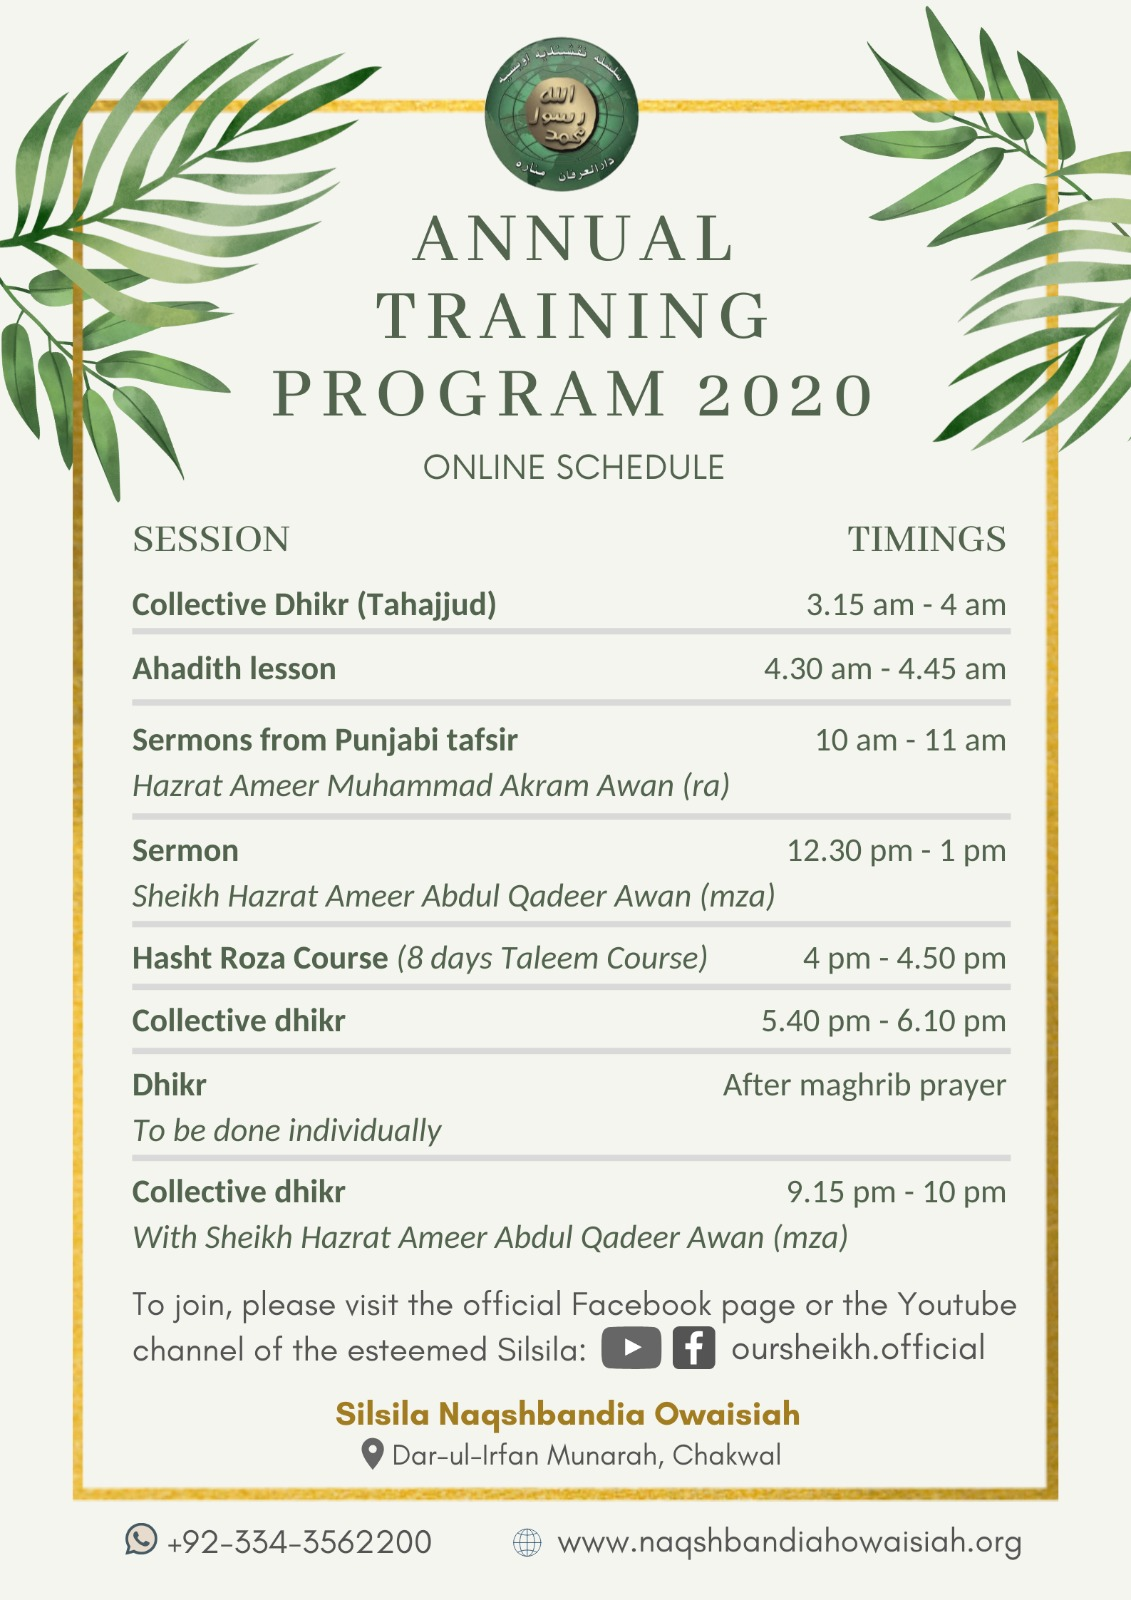 Annual Training Program 2020 - 3